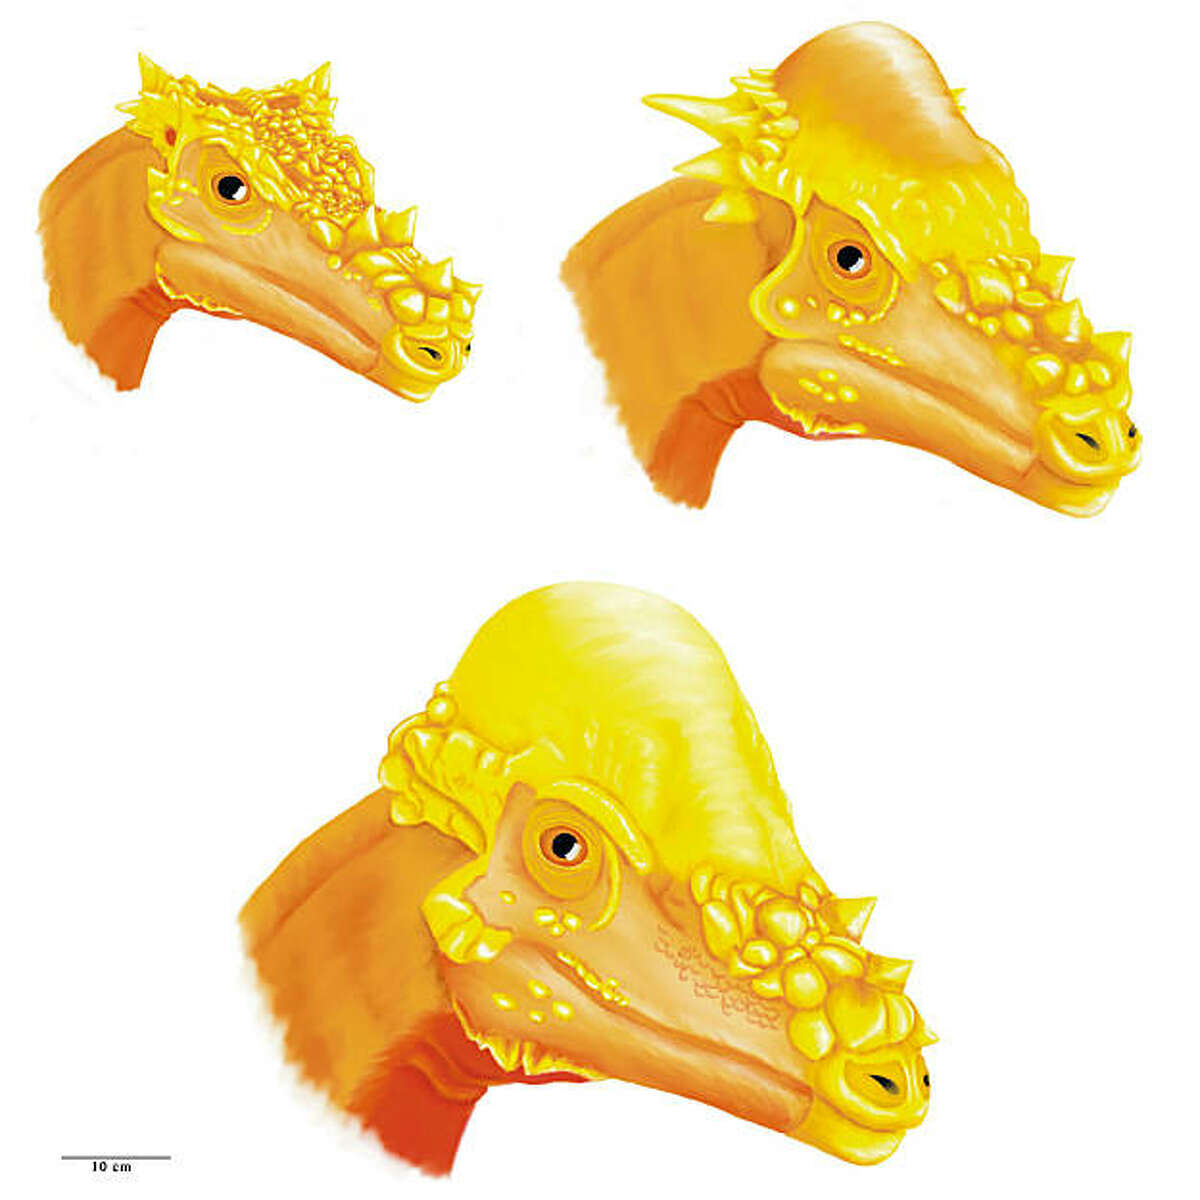 This artist's rendering shows what scientists believe to be three species of pachycephalosaur, a bony-headed dinosaur that lived 65-million years ago. A new study by UC Berkeley paleontologist Mark Goodwin and his partner Jack Horner of the Museum of the Rockies says that the three species might actually be just one that changed drastically during adolescence. The illustration shows Dracorex hogwartsia (top left), Stygimolach spinifer (top right) and Pachycephalosaurus.